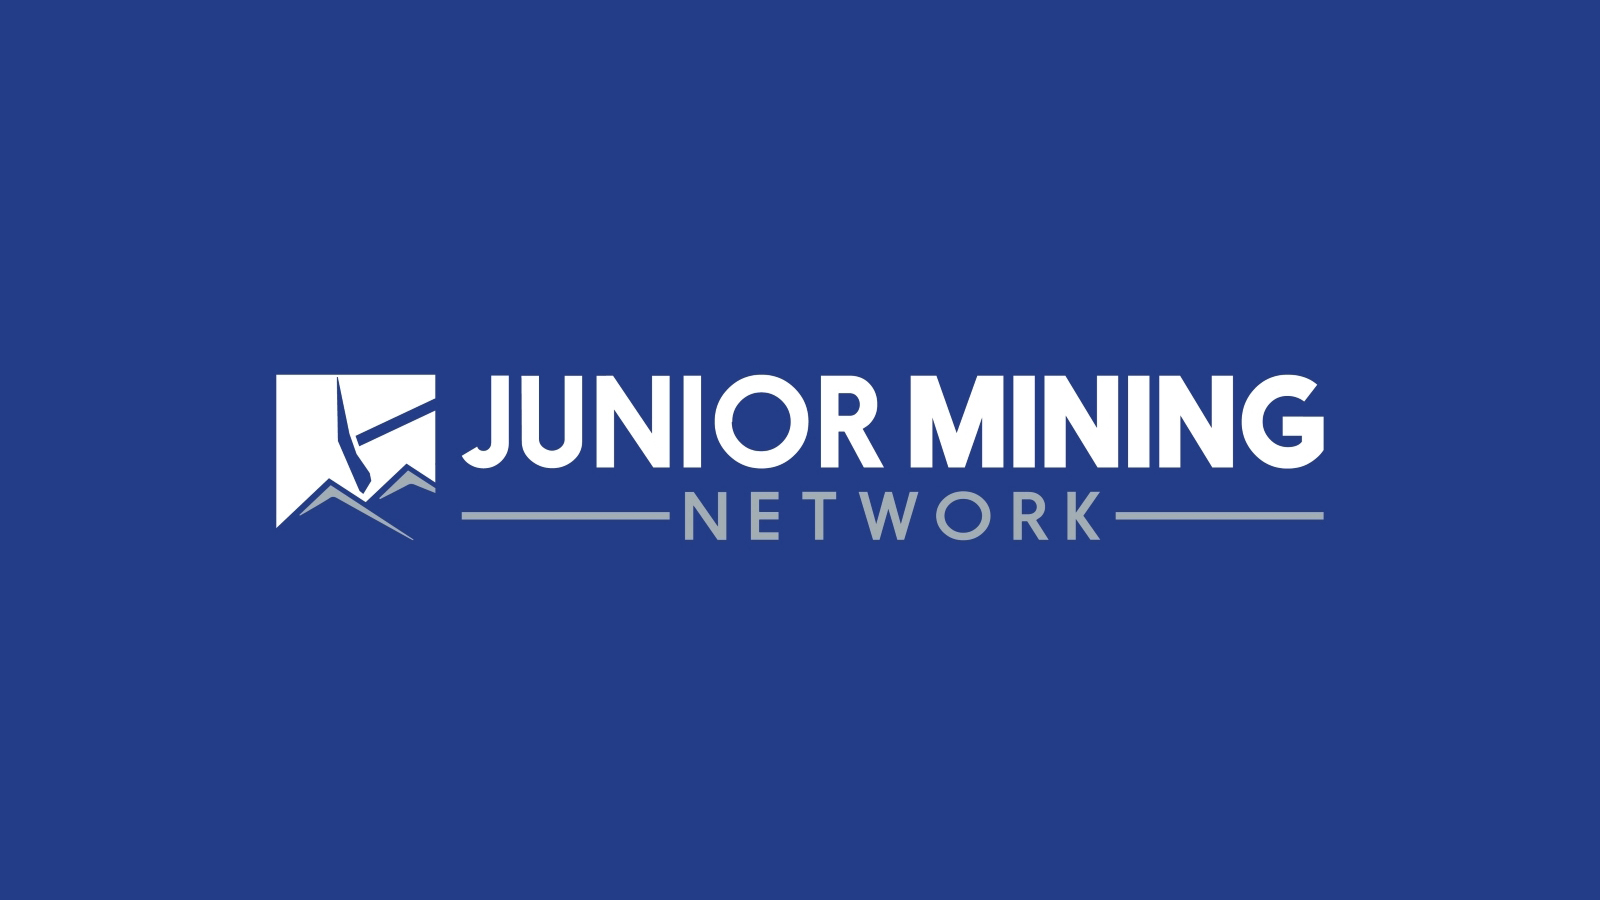 Cannot view this image? Visit: https://www.juniorminingnetwork.com/images/news/newsfile/32201_dni1.jpg